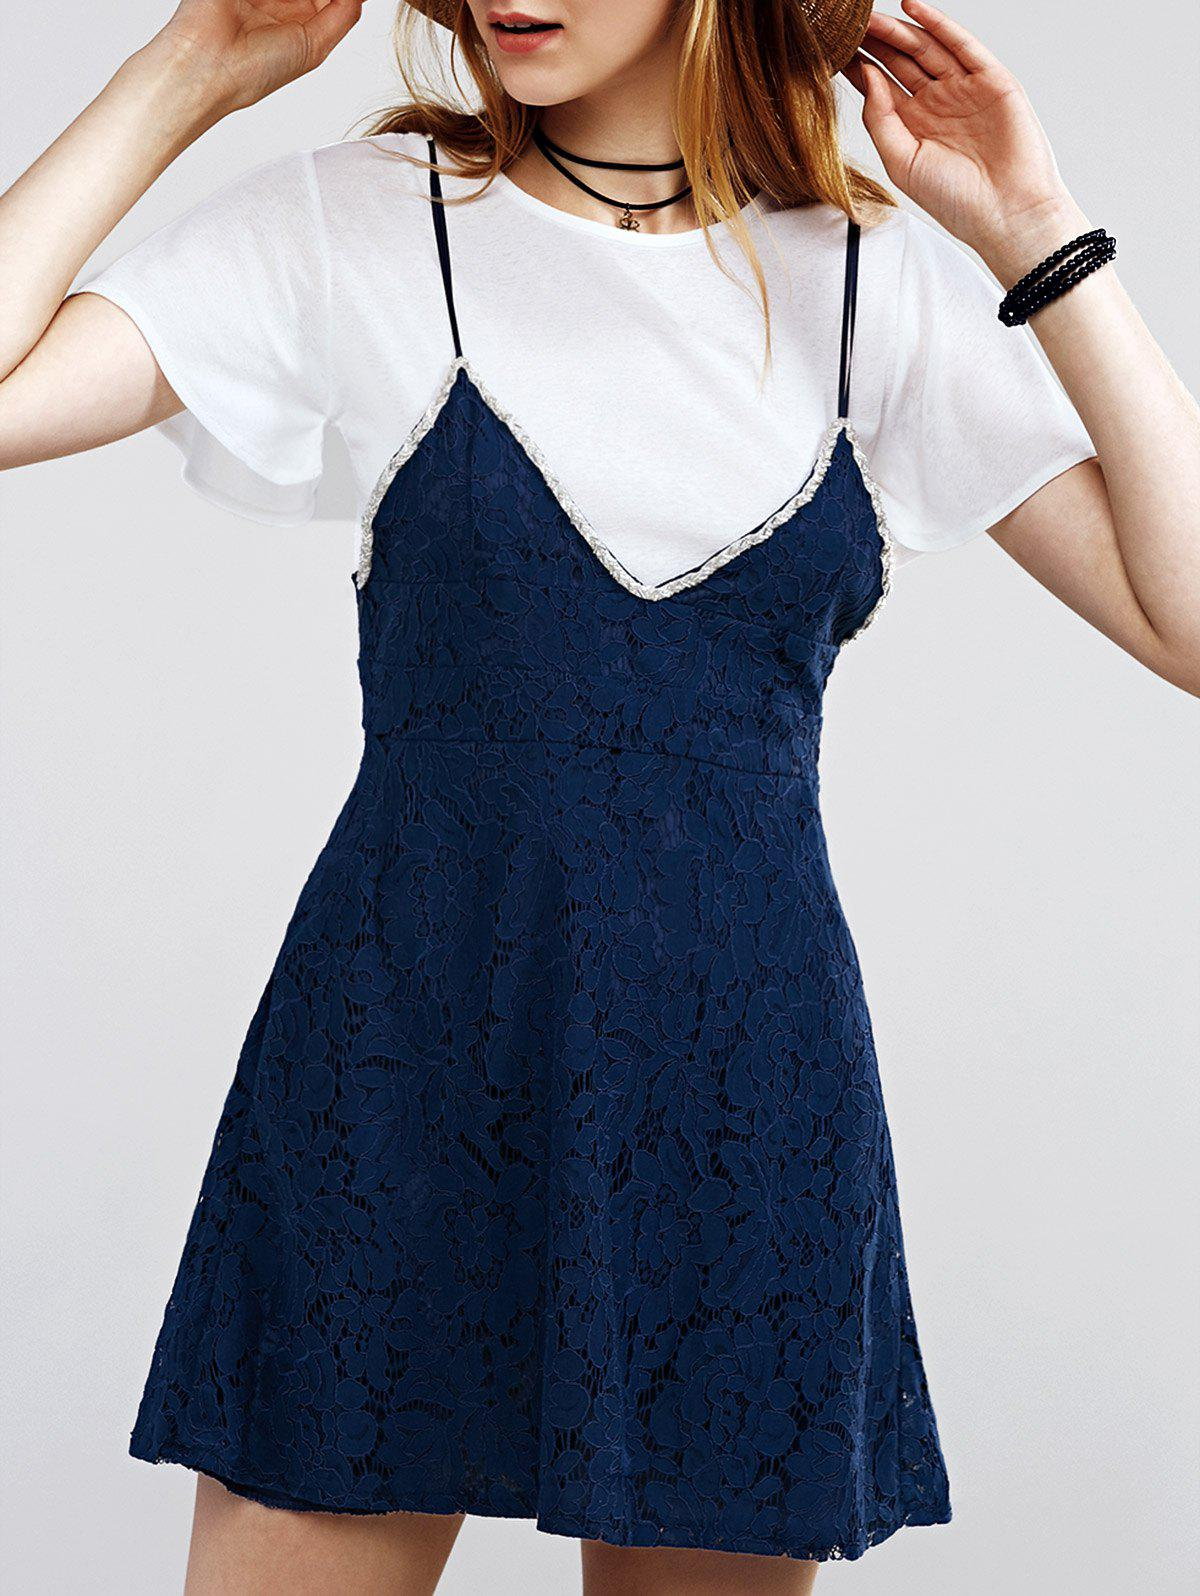 Refreshing Women's Flare Sleeve Tee + Laced Suspender Dress - CADETBLUE / WHITE ONE SIZE(FIT SIZE XS TO M)